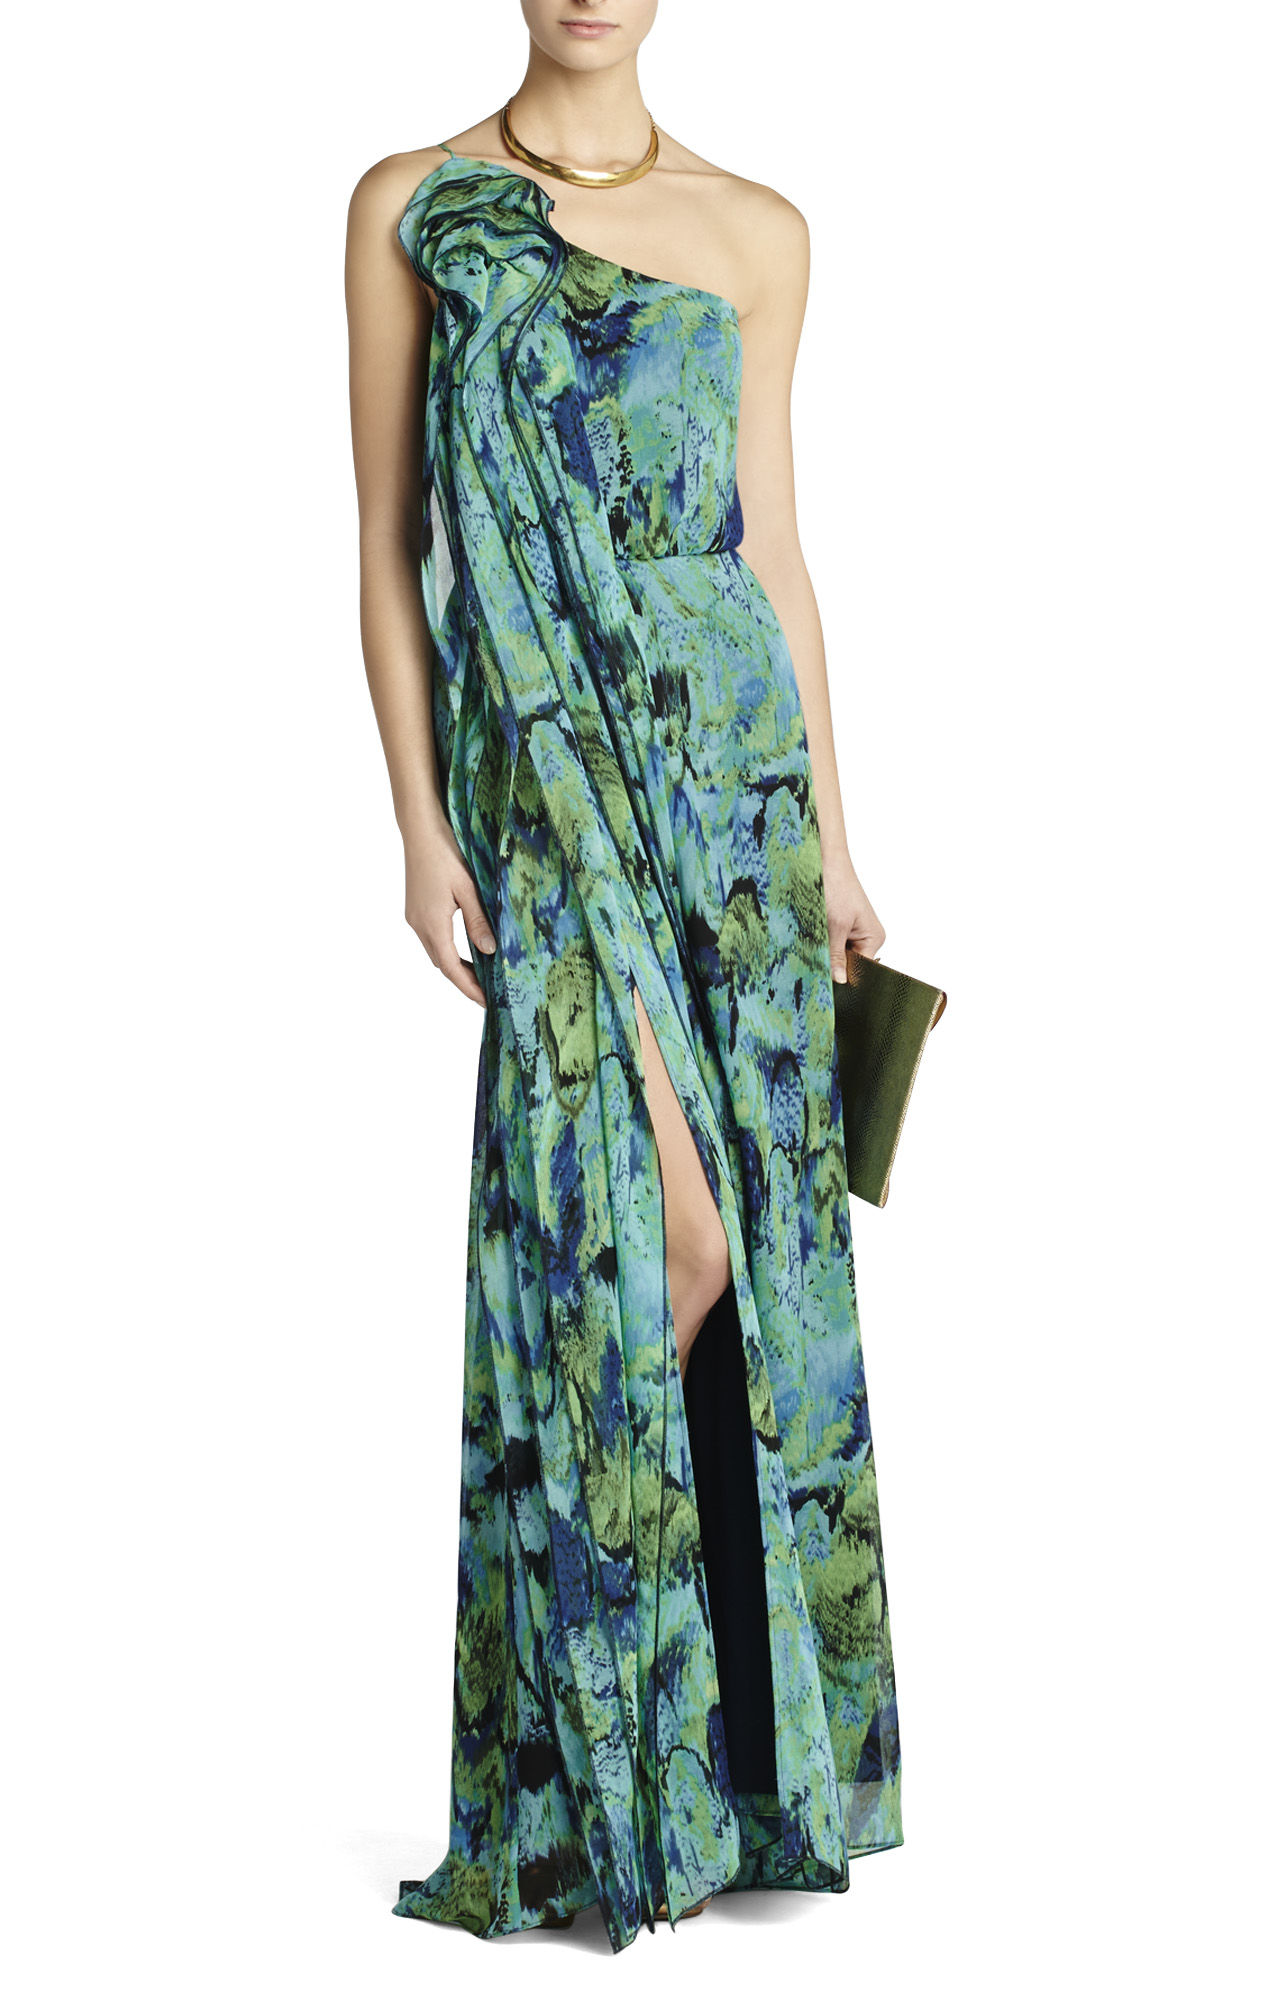 BCBG MaxAzria Nalda One-Shoulder Long Ruffle Dress